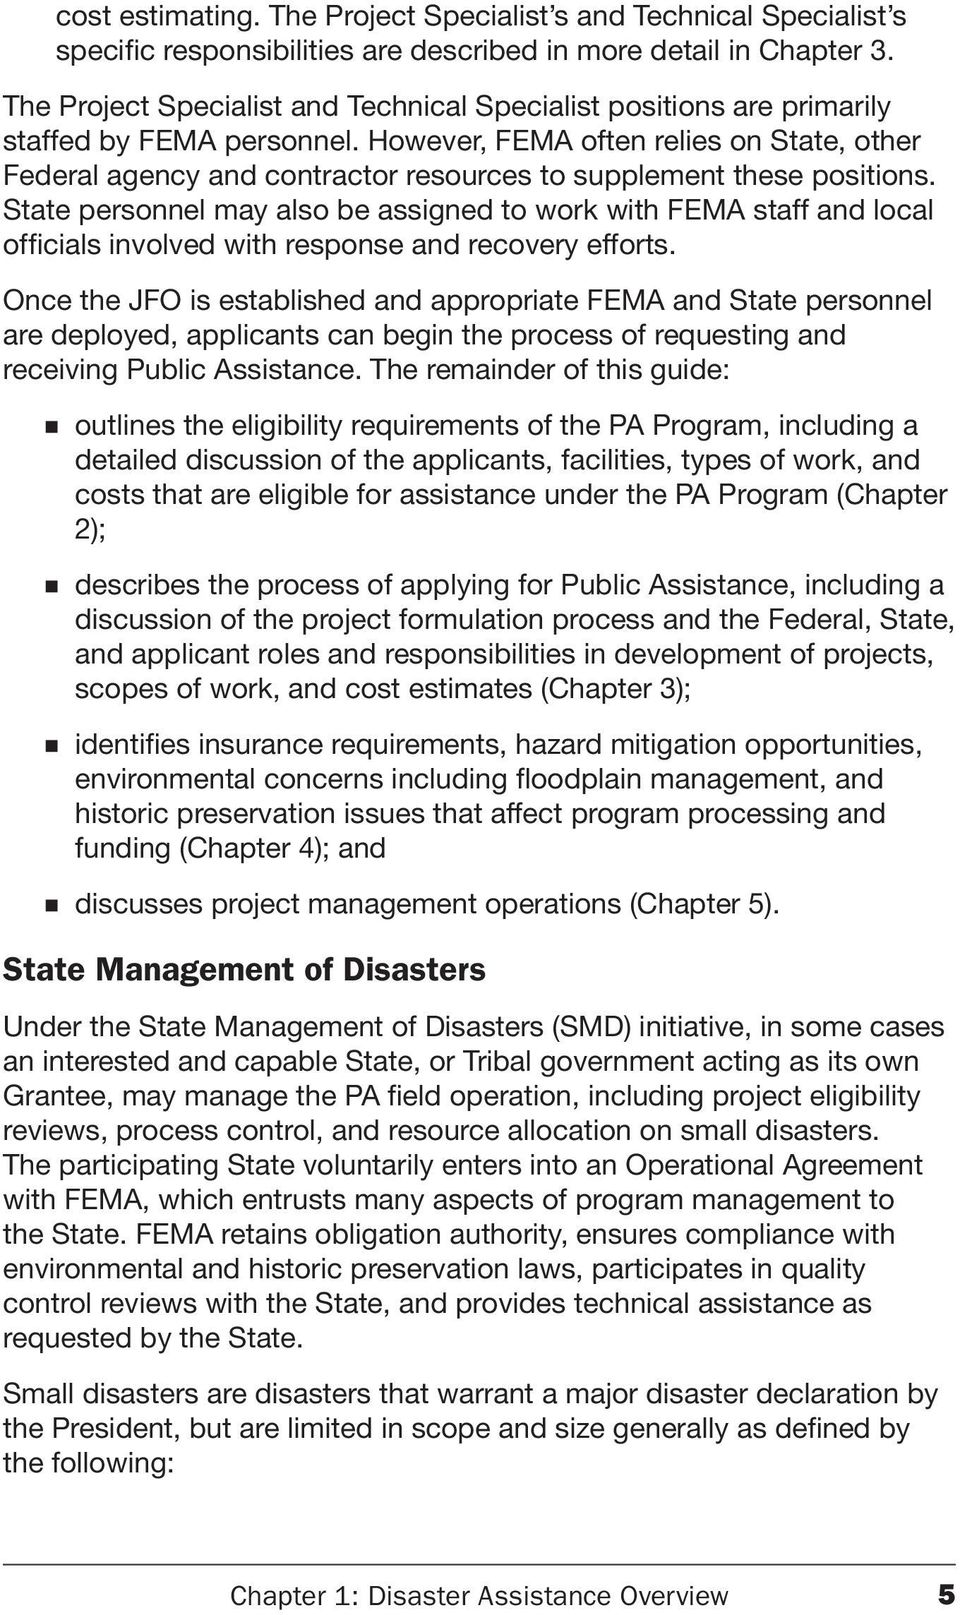 However, FEMA often relies on State, other Federal agency and contractor resources to supplement these positions.